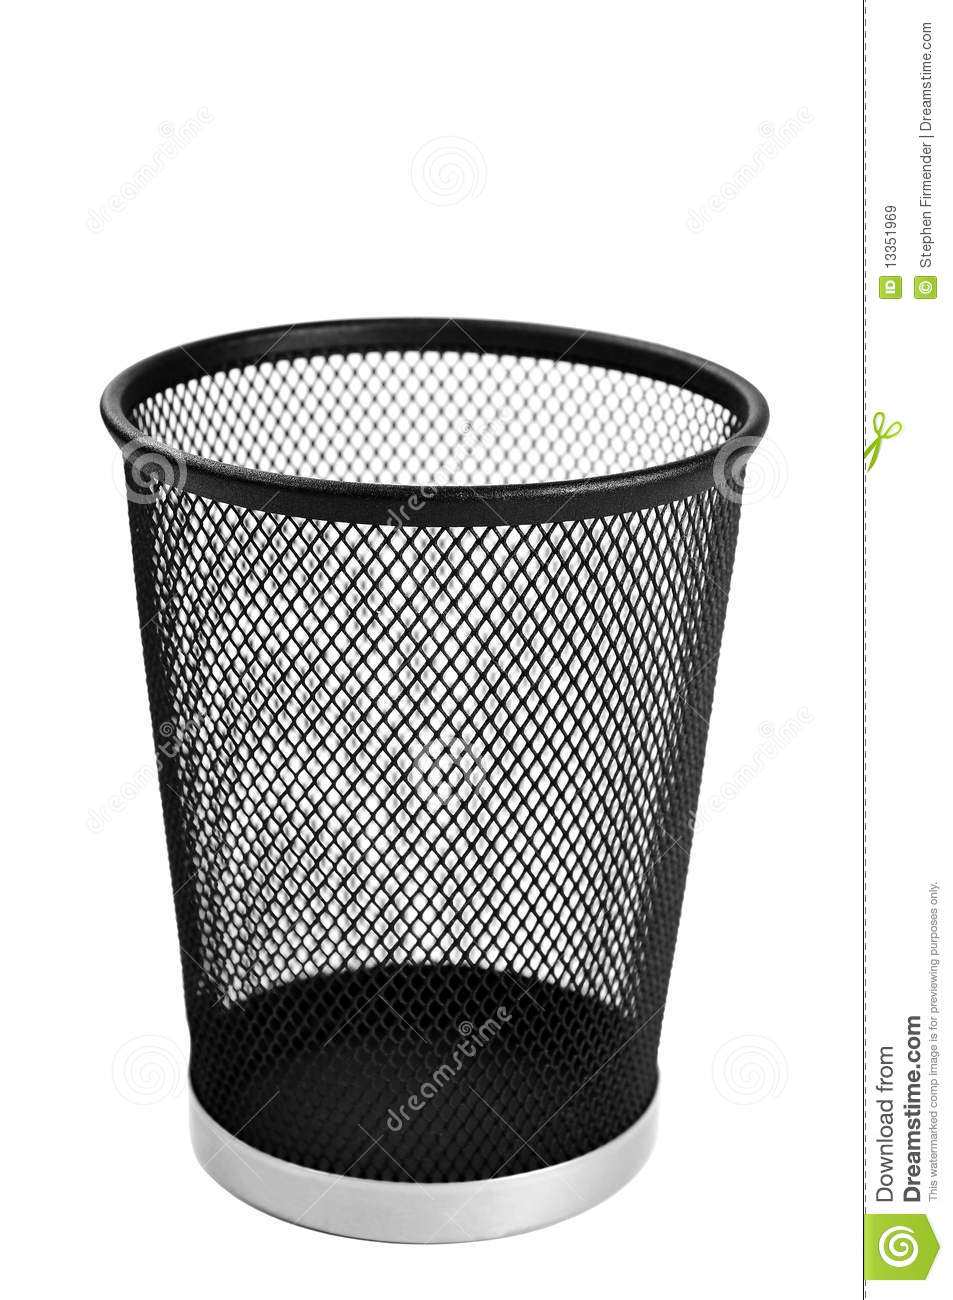 Wastepaper Basket Impressive Waste Paper Basket Royalty Free Stock Images  Image 13351969 Design Inspiration